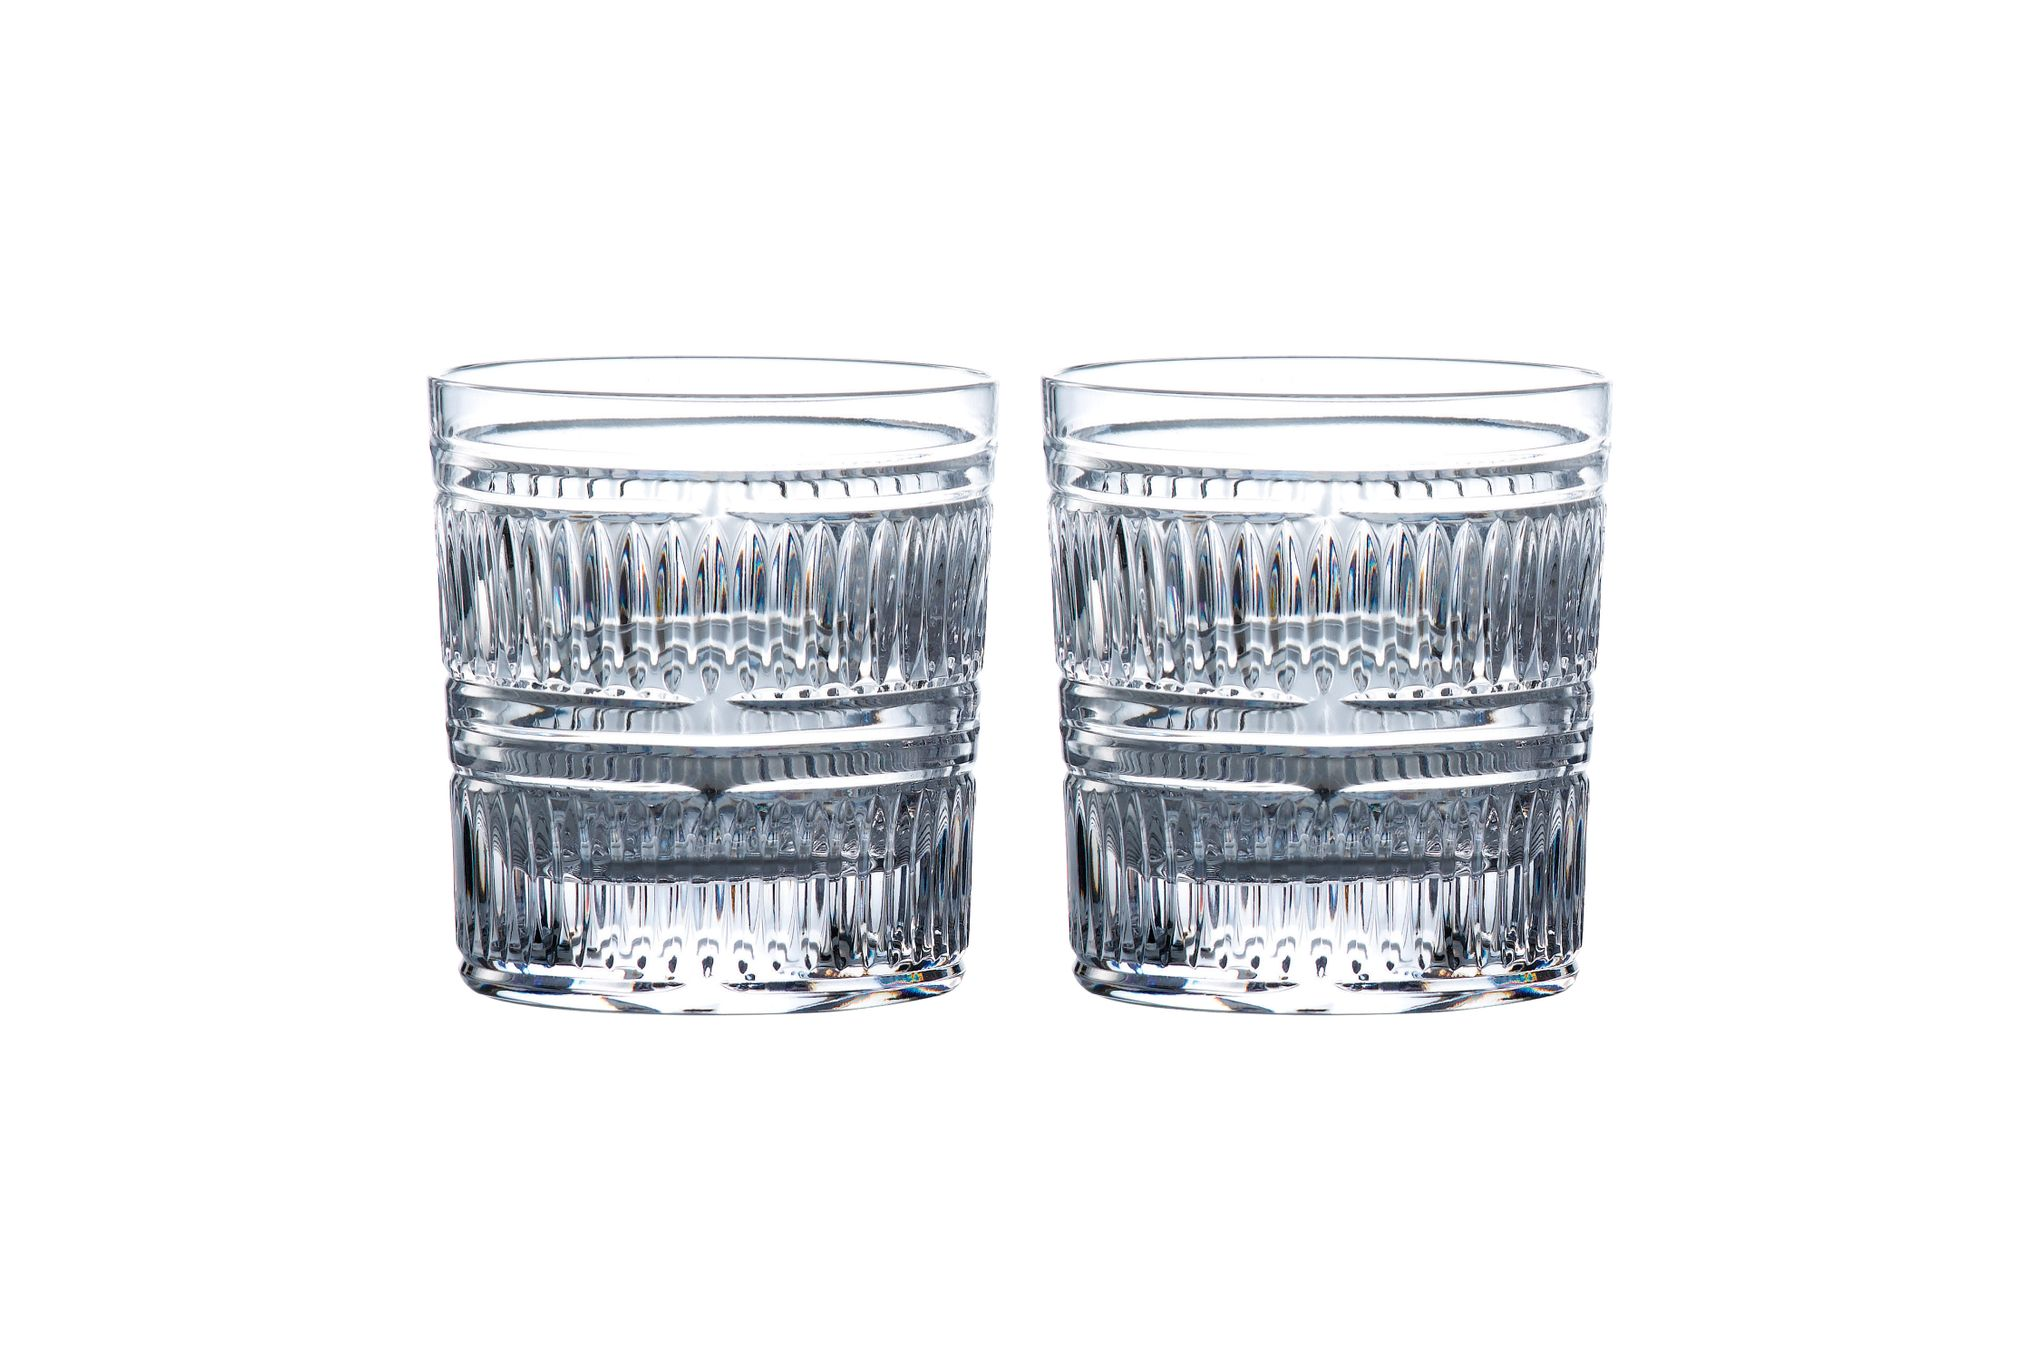 Royal Doulton Radial Pair of Tumblers 290ml thumb 1